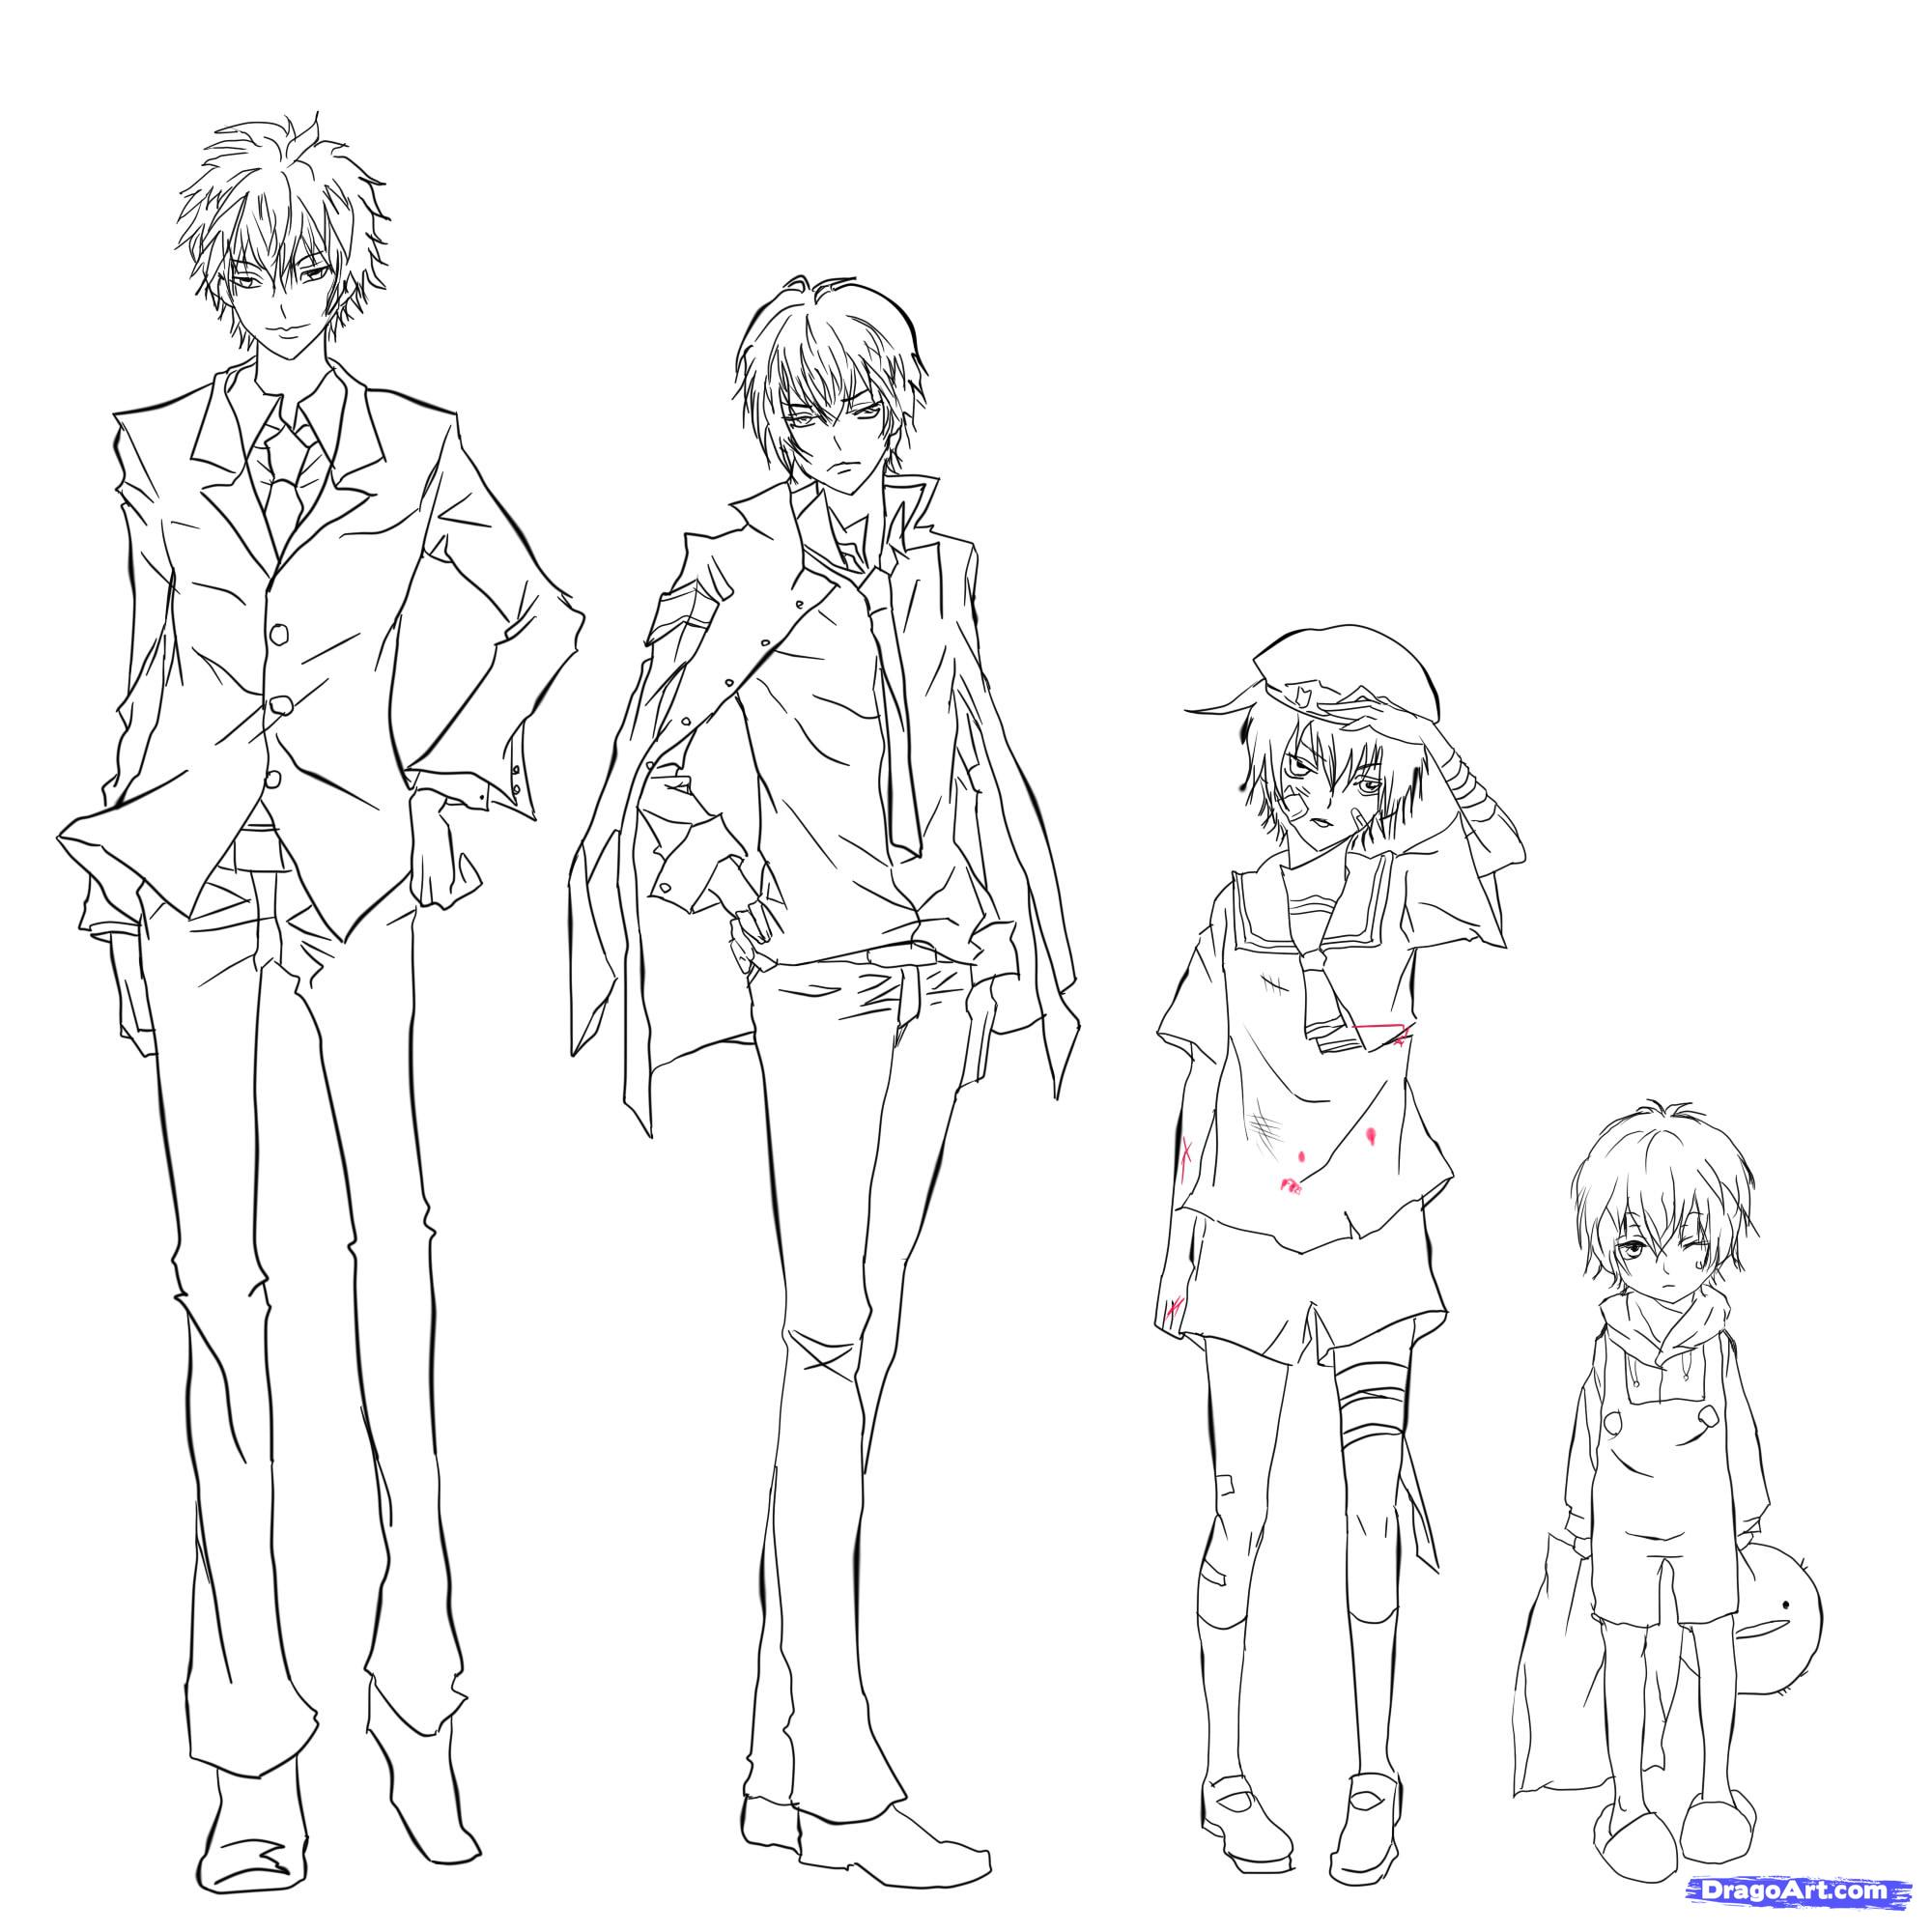 2000x2000 By Step, Anime People, Anime, Draw Japanese Anime, Draw Manga